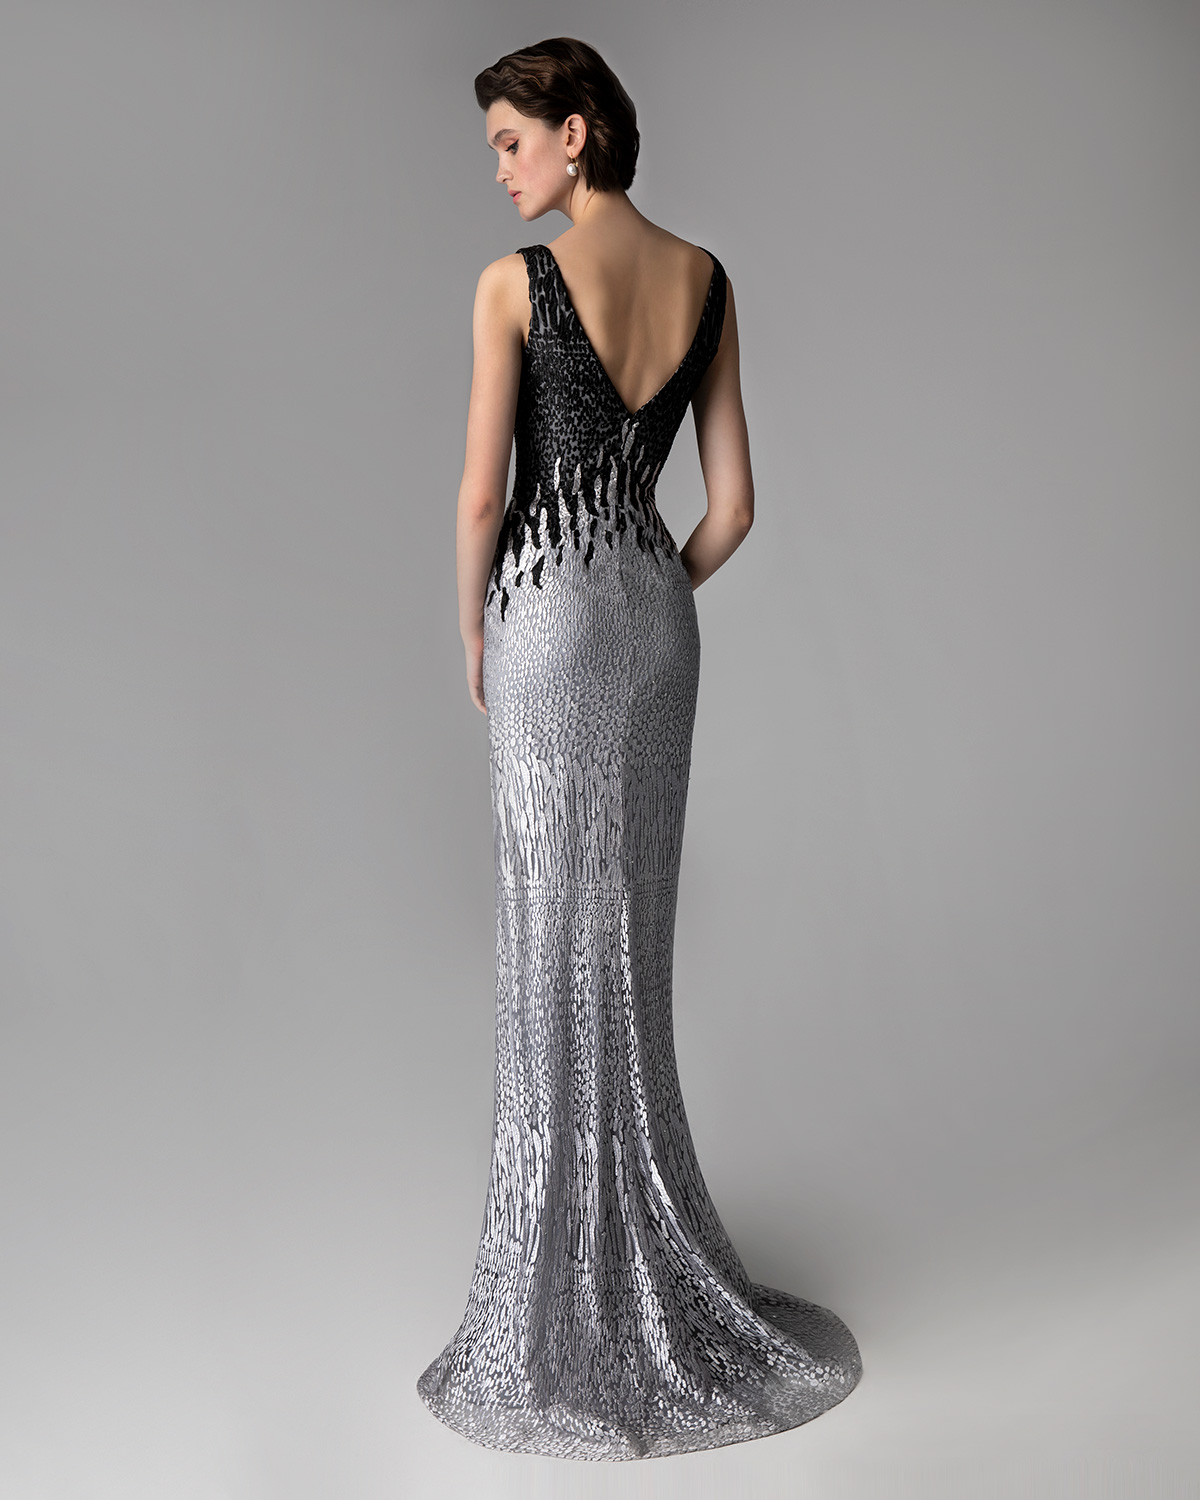 Classic Dresses / Long evening dress with lace and beading